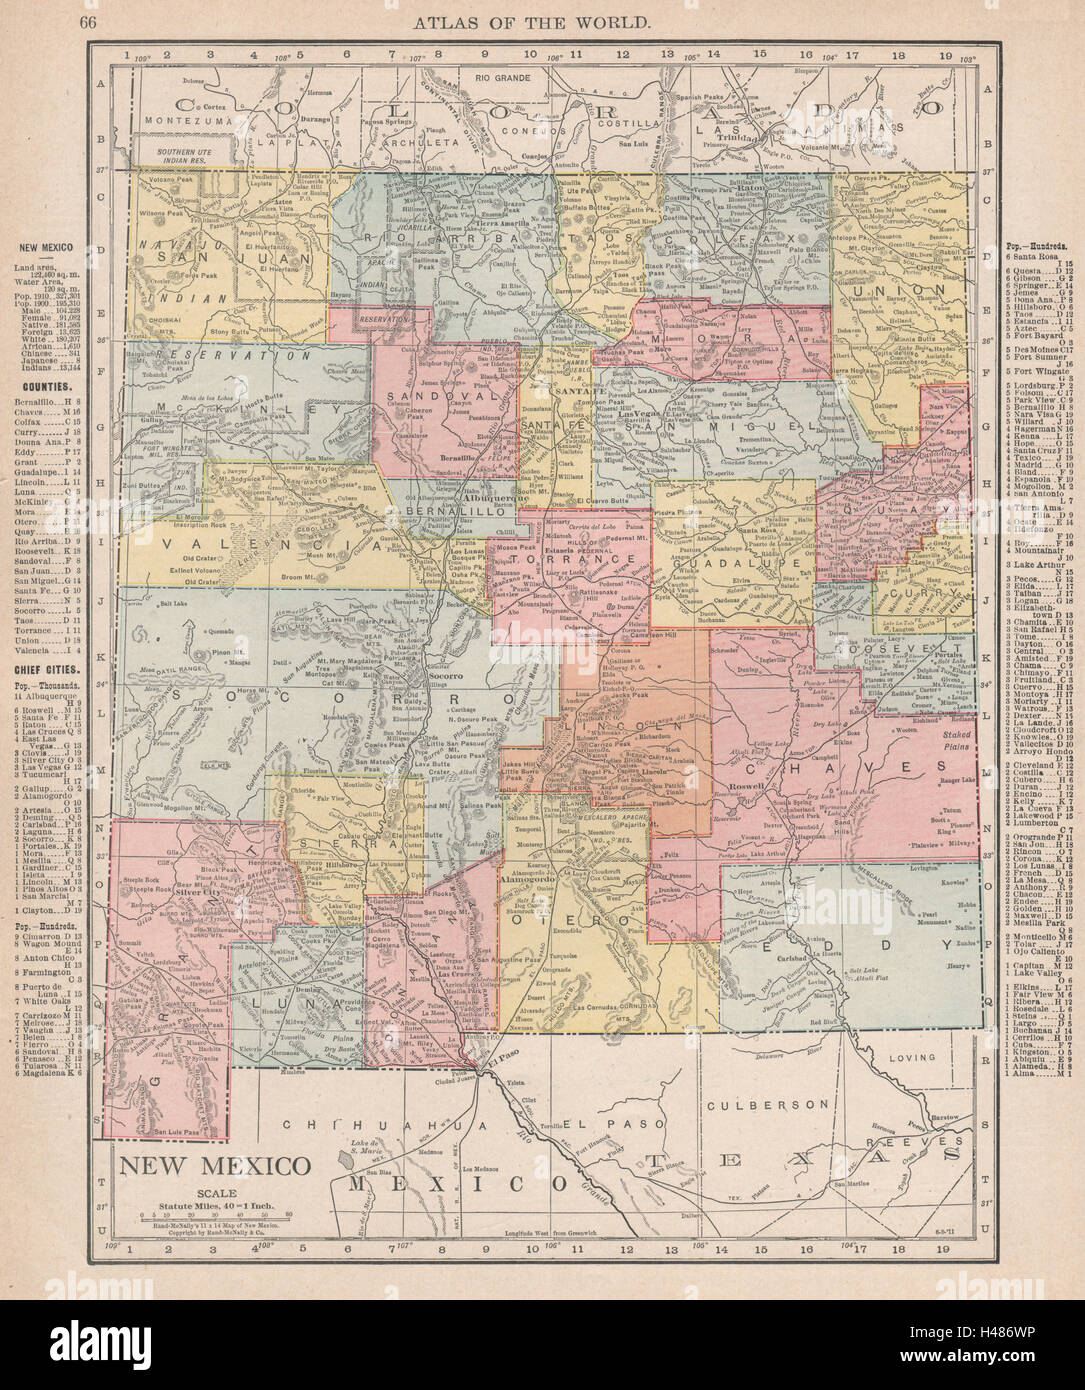 New Mexico state map showing counties. RAND MCNALLY 1912 old antique ...